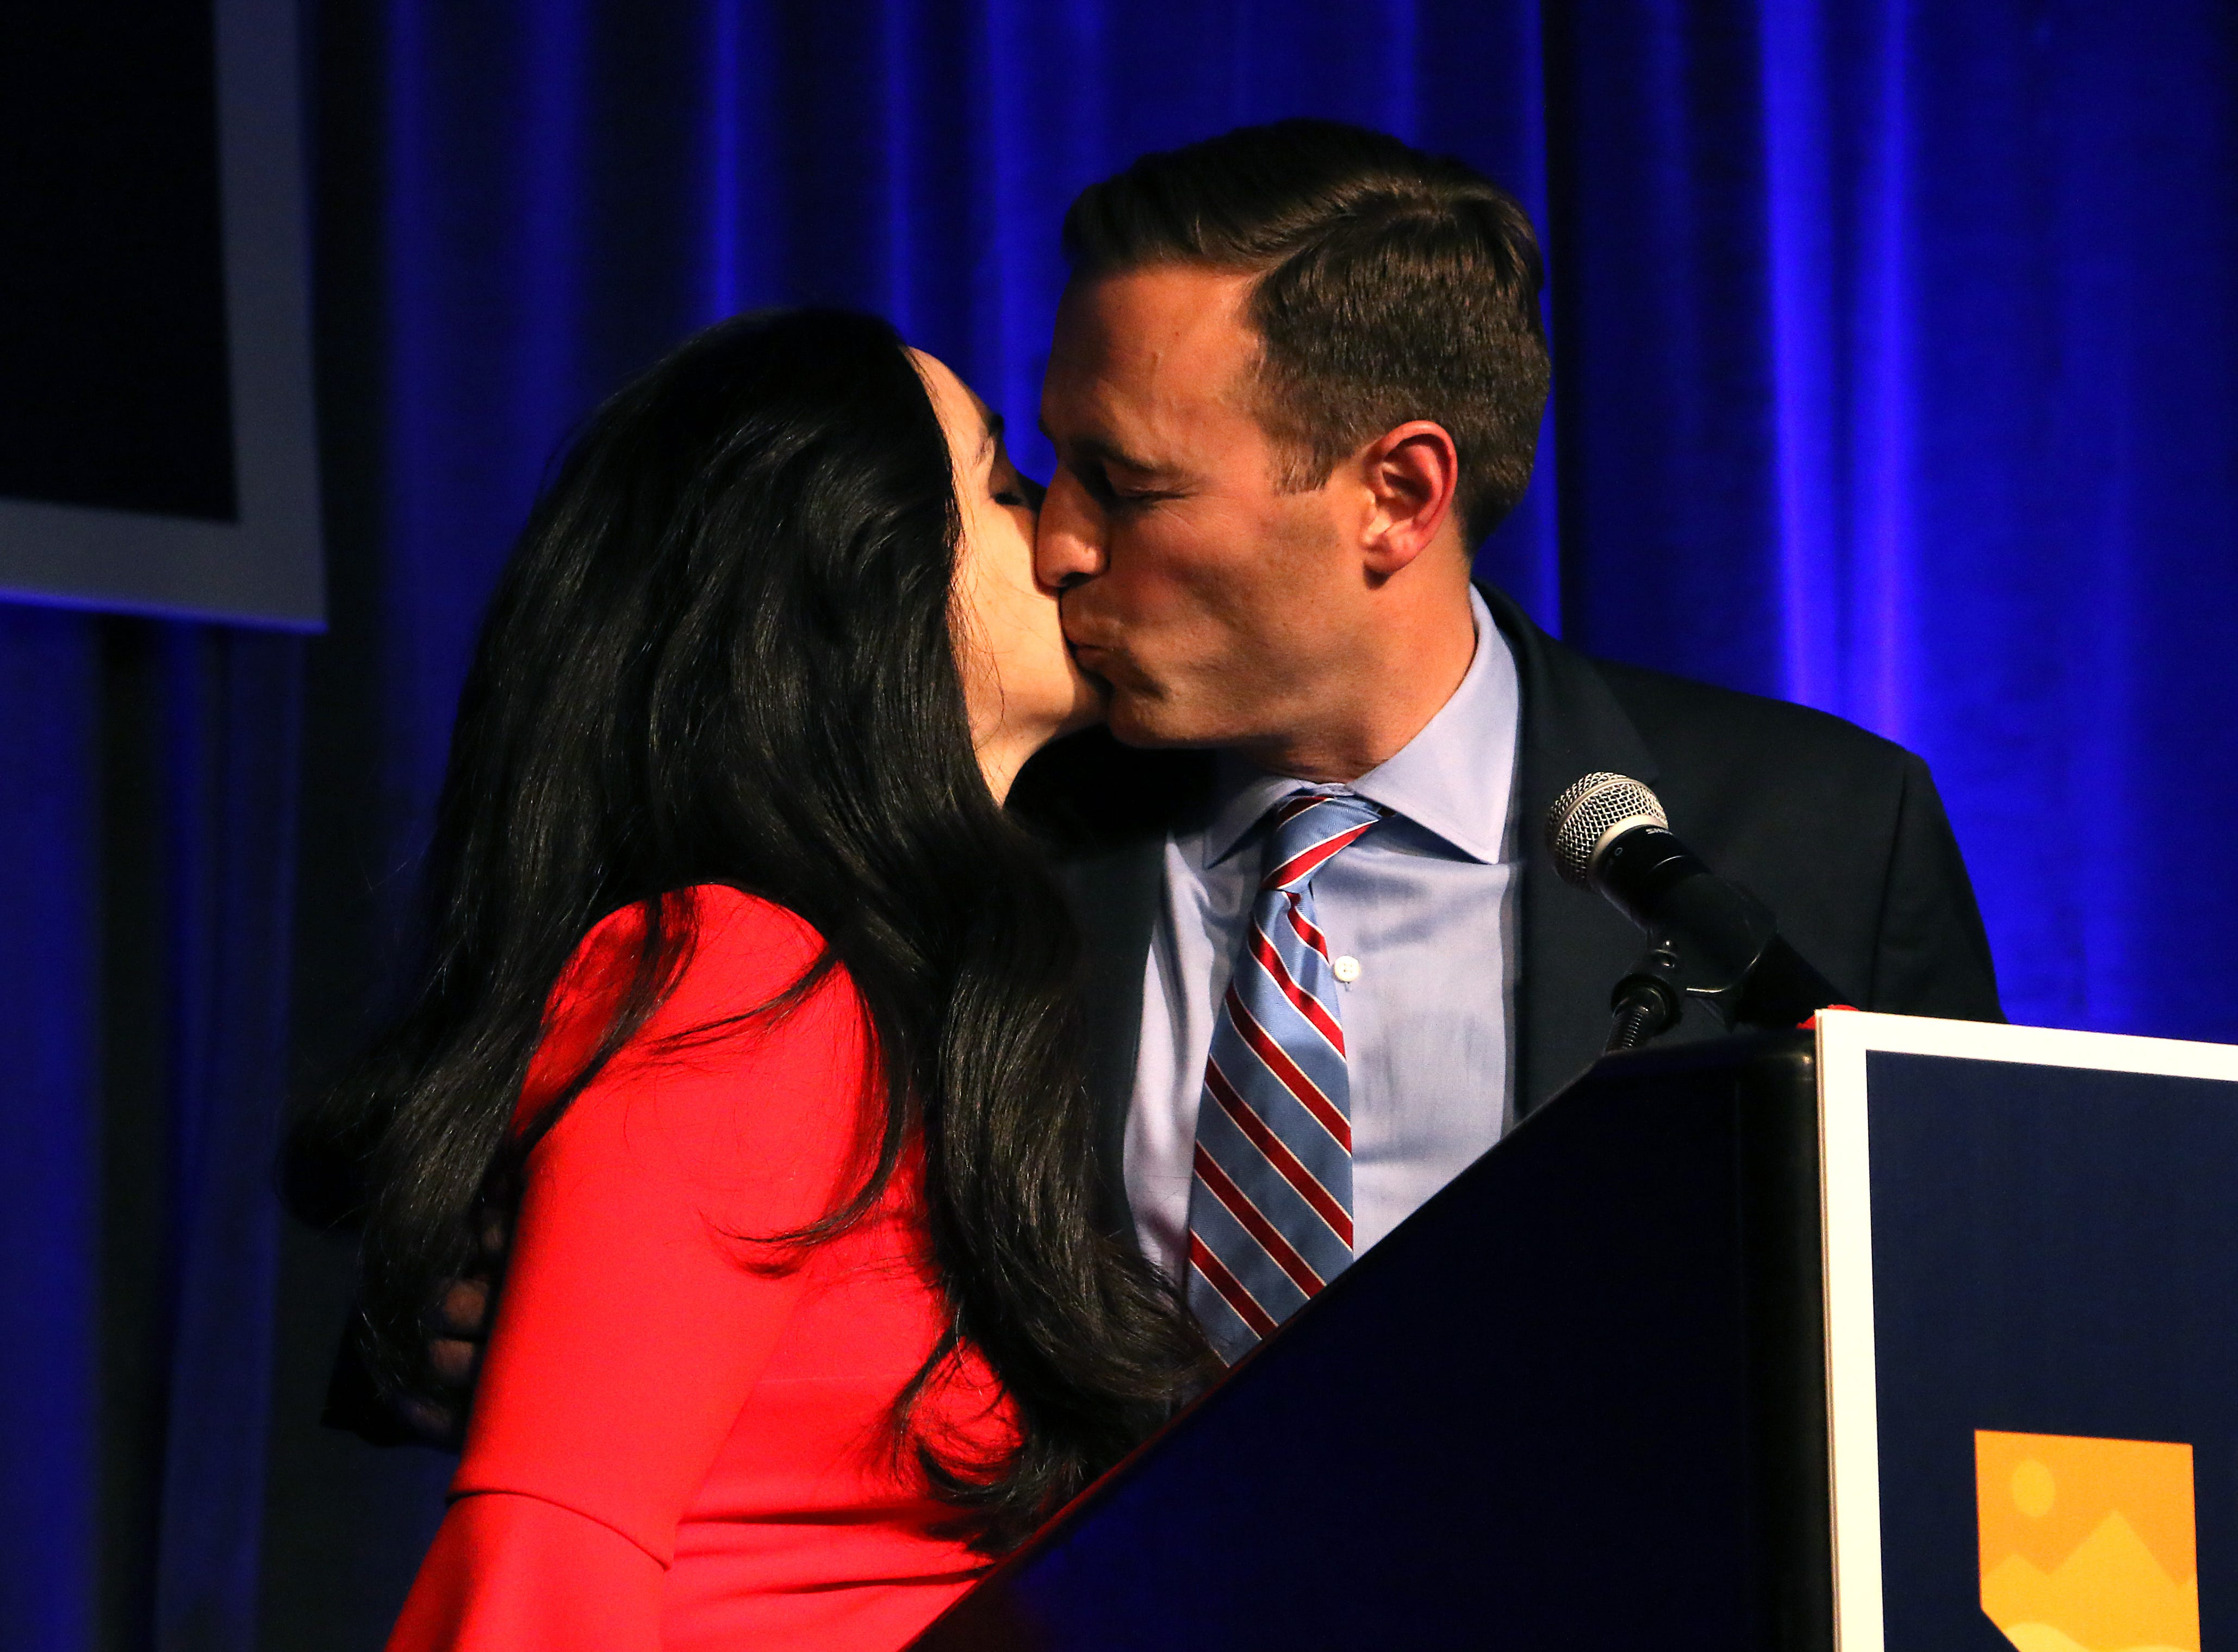 Nevada Attorney General Adam Laxalt kisses his wife Jaime after conceding the race for Governor in front of supporters in the Crystal Ballroom in the Grand Sierra Resort in Reno on Nov. 6, 2018.